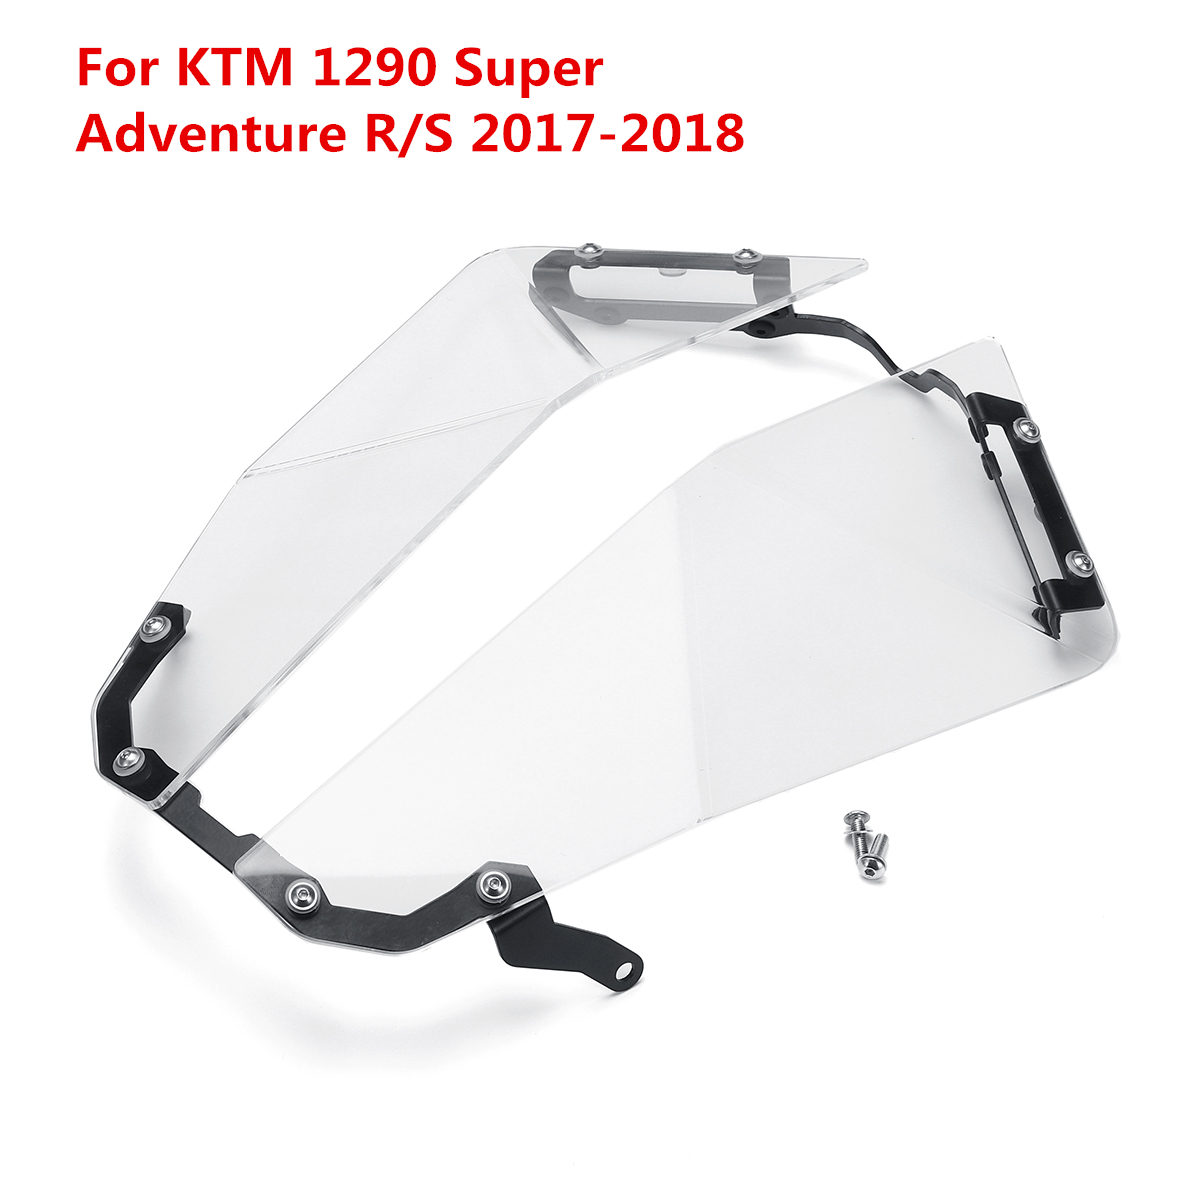 For KTM 1290 Super Adventure R/S 2017-2018 Motorcycle Front Transparent Headlight Guard Headlight Protector Cover Lens